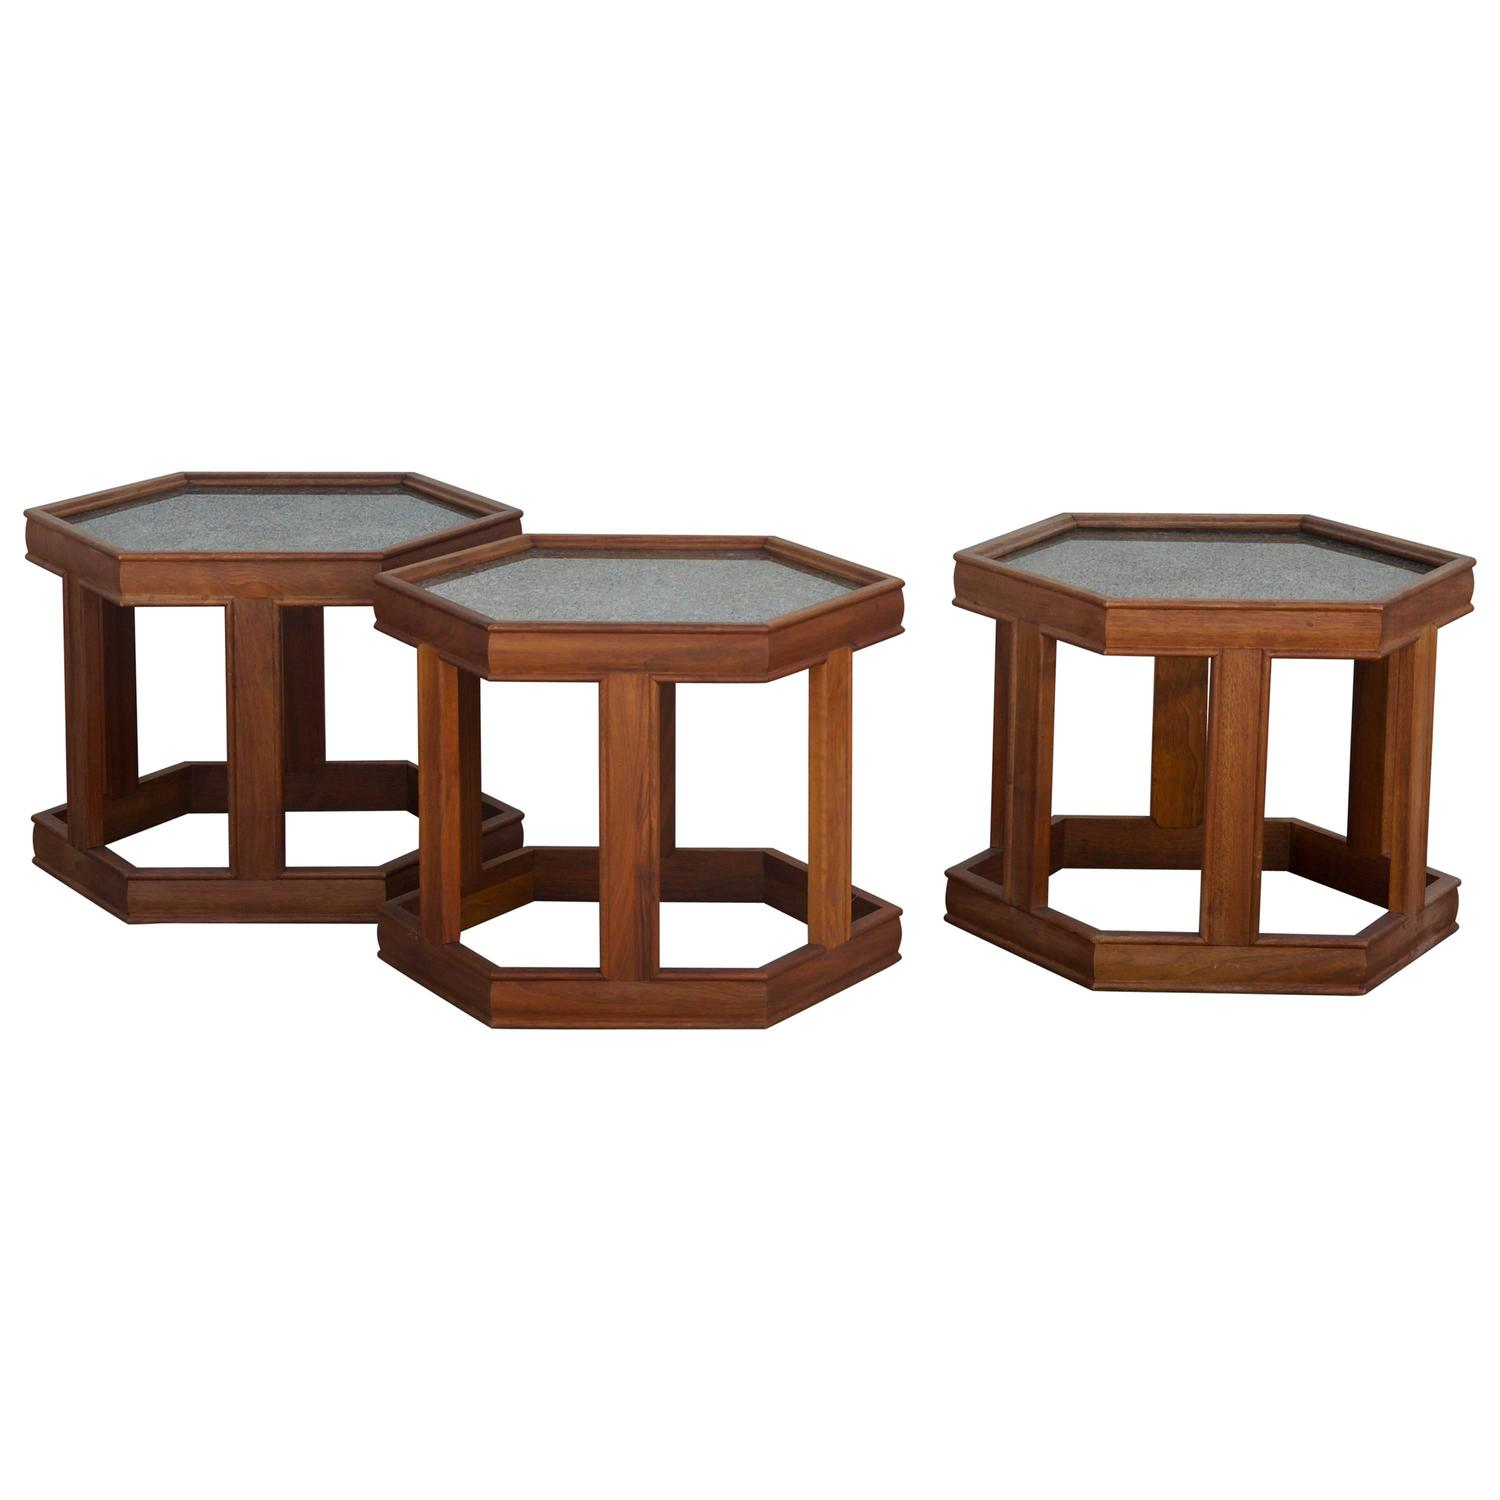 Mid Century Coffee Table John Keal For Brown Saltman At: Group Of Three Side Tables Or Coffee Table By John Keal